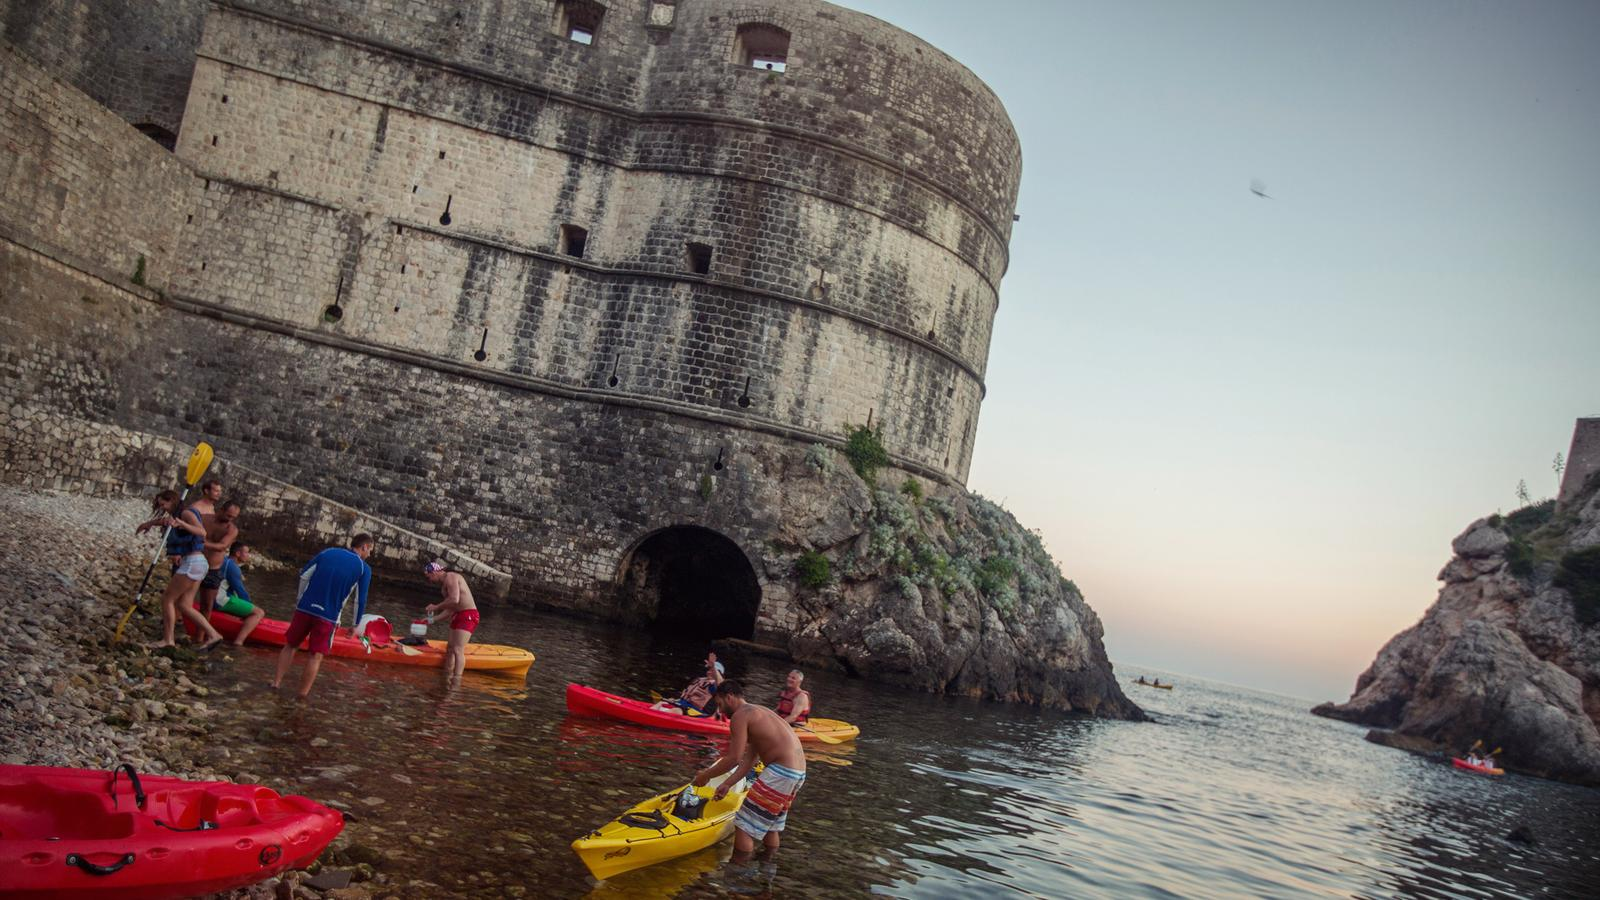 Getting ready for a kayak ride throught the Bay of Kotor